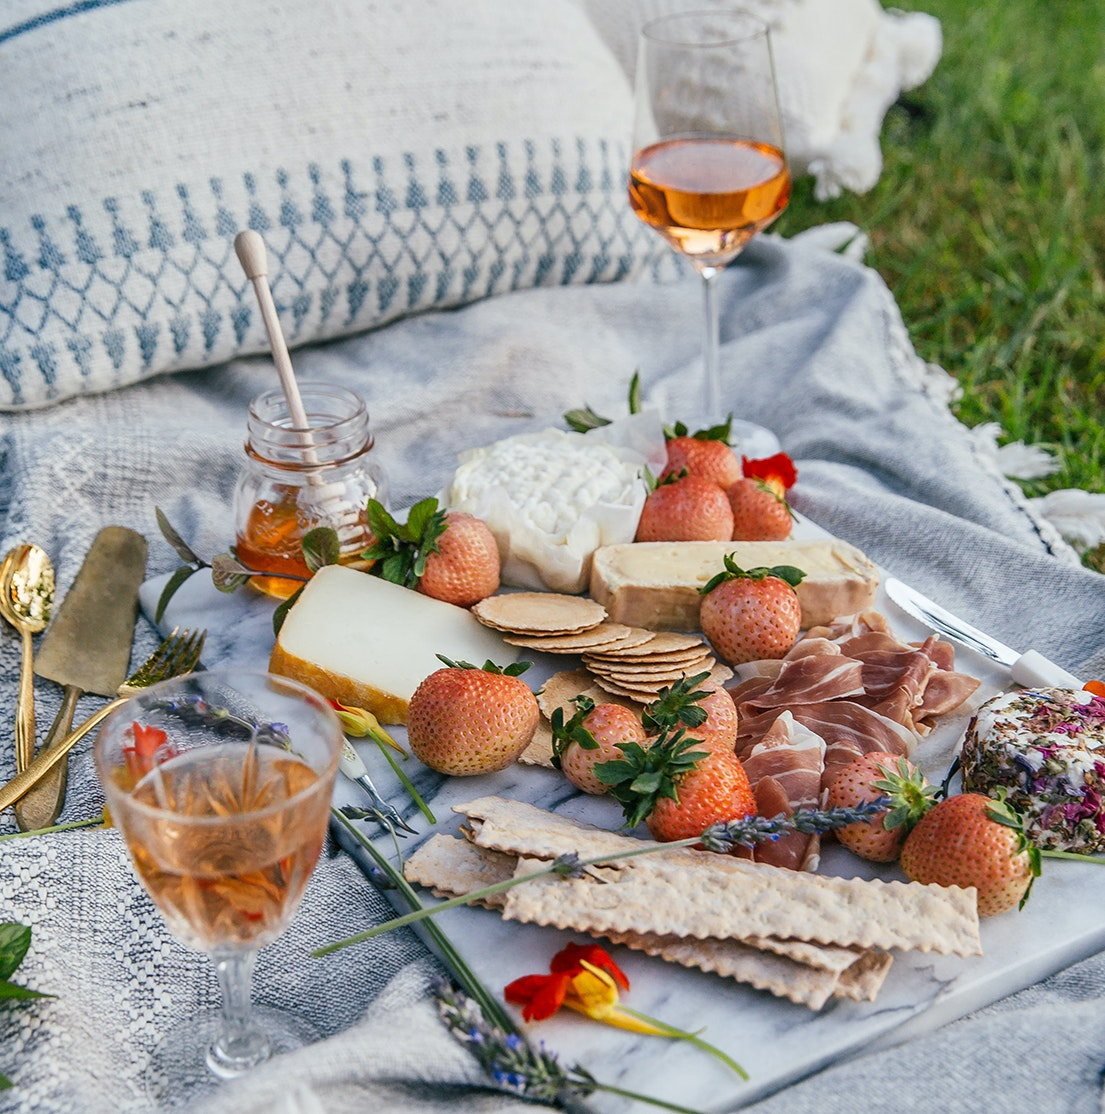 For #NationalPicnicDay, we've partnered with 8 Bay Area Sommeliers to bring their expertise right into your home. They're sharing tasting notes & reactions to our Sweetest Batch™ and Rose Berries™, which are perfect for your next #picnic. ☀️🧺🍃🥂  https://t.co/nAoL4IZT0e https://t.co/aL6qBhHpAQ